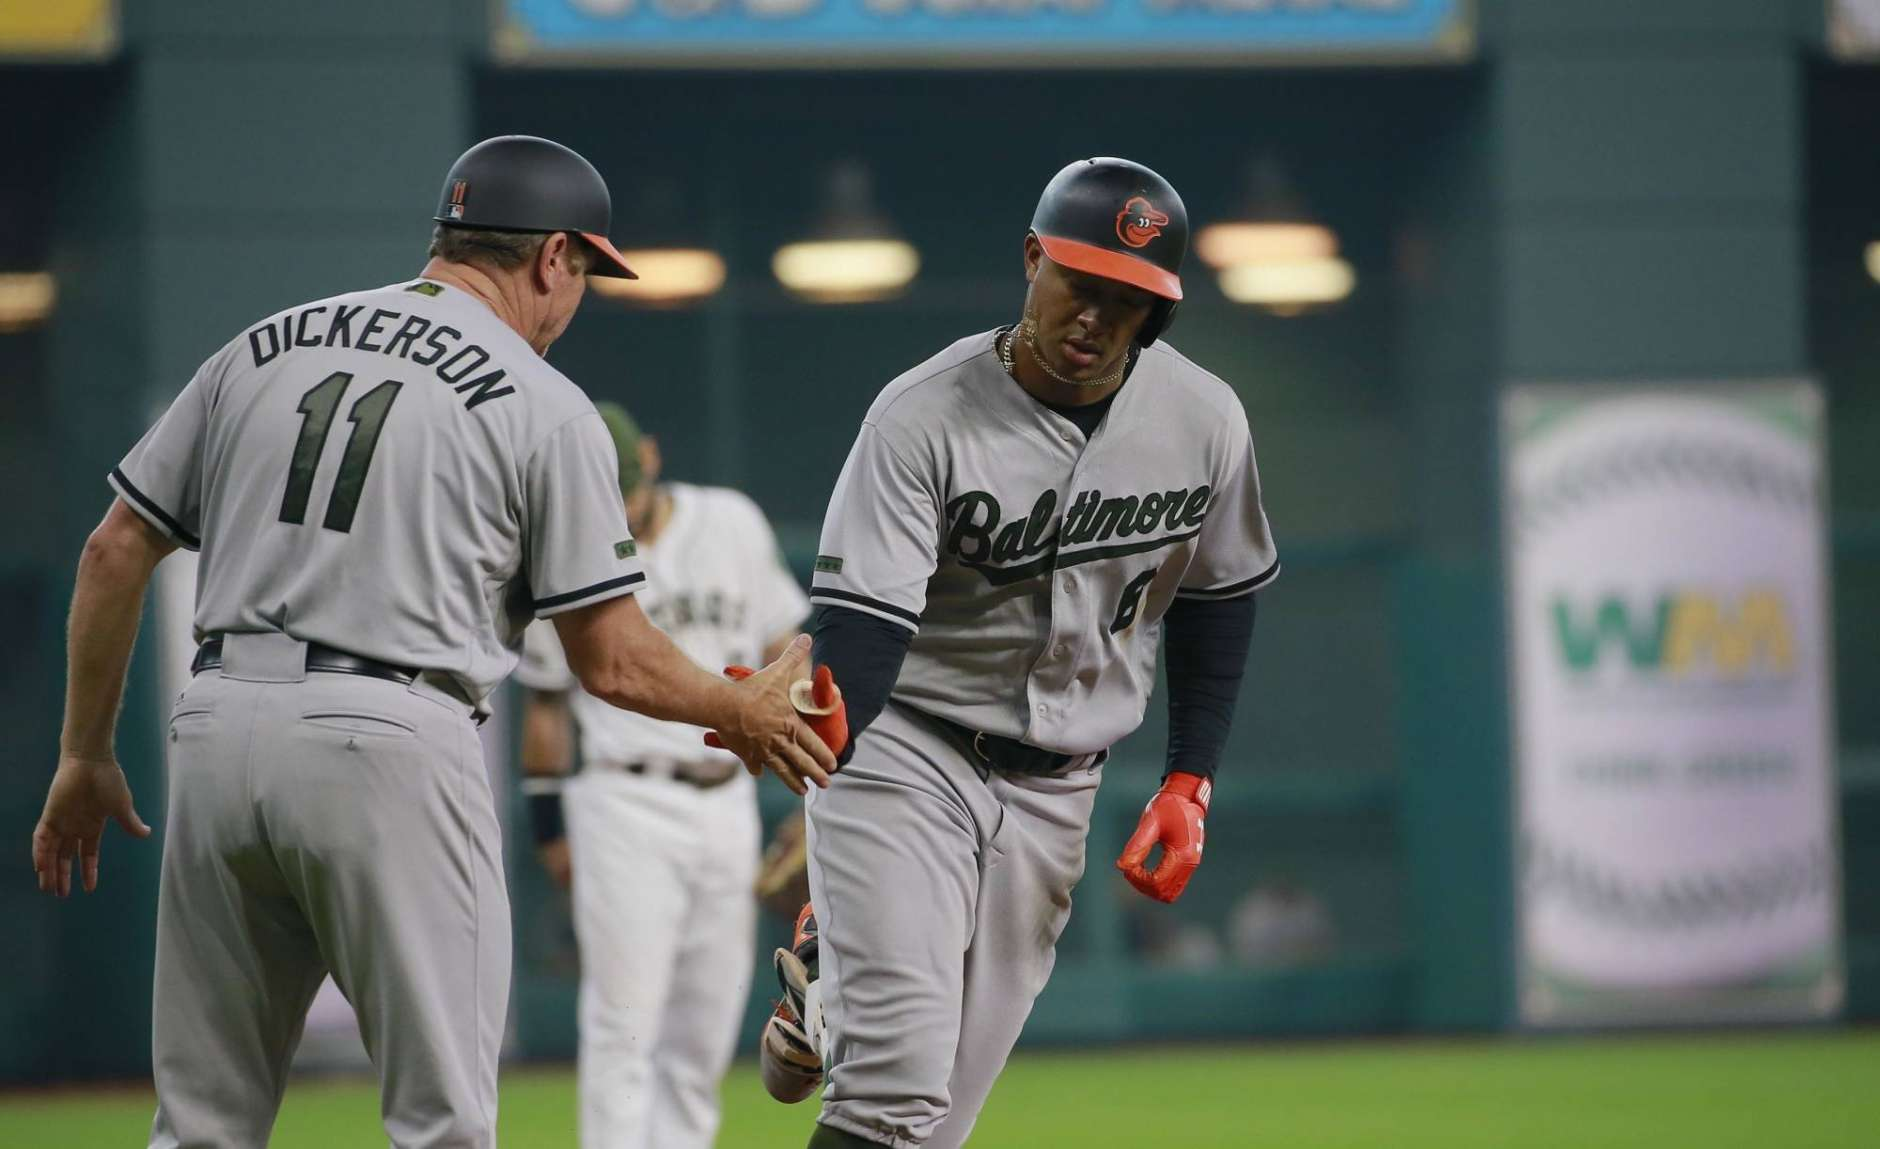 Baltimore Orioles' Jonathan Schoop is congratulated by third base coach Bobby Dickerson after his home run against the Houston Astros in the first inning of a baseball game Sunday, May 28, 2017 in Houston. (AP Photo/Richard Carson)